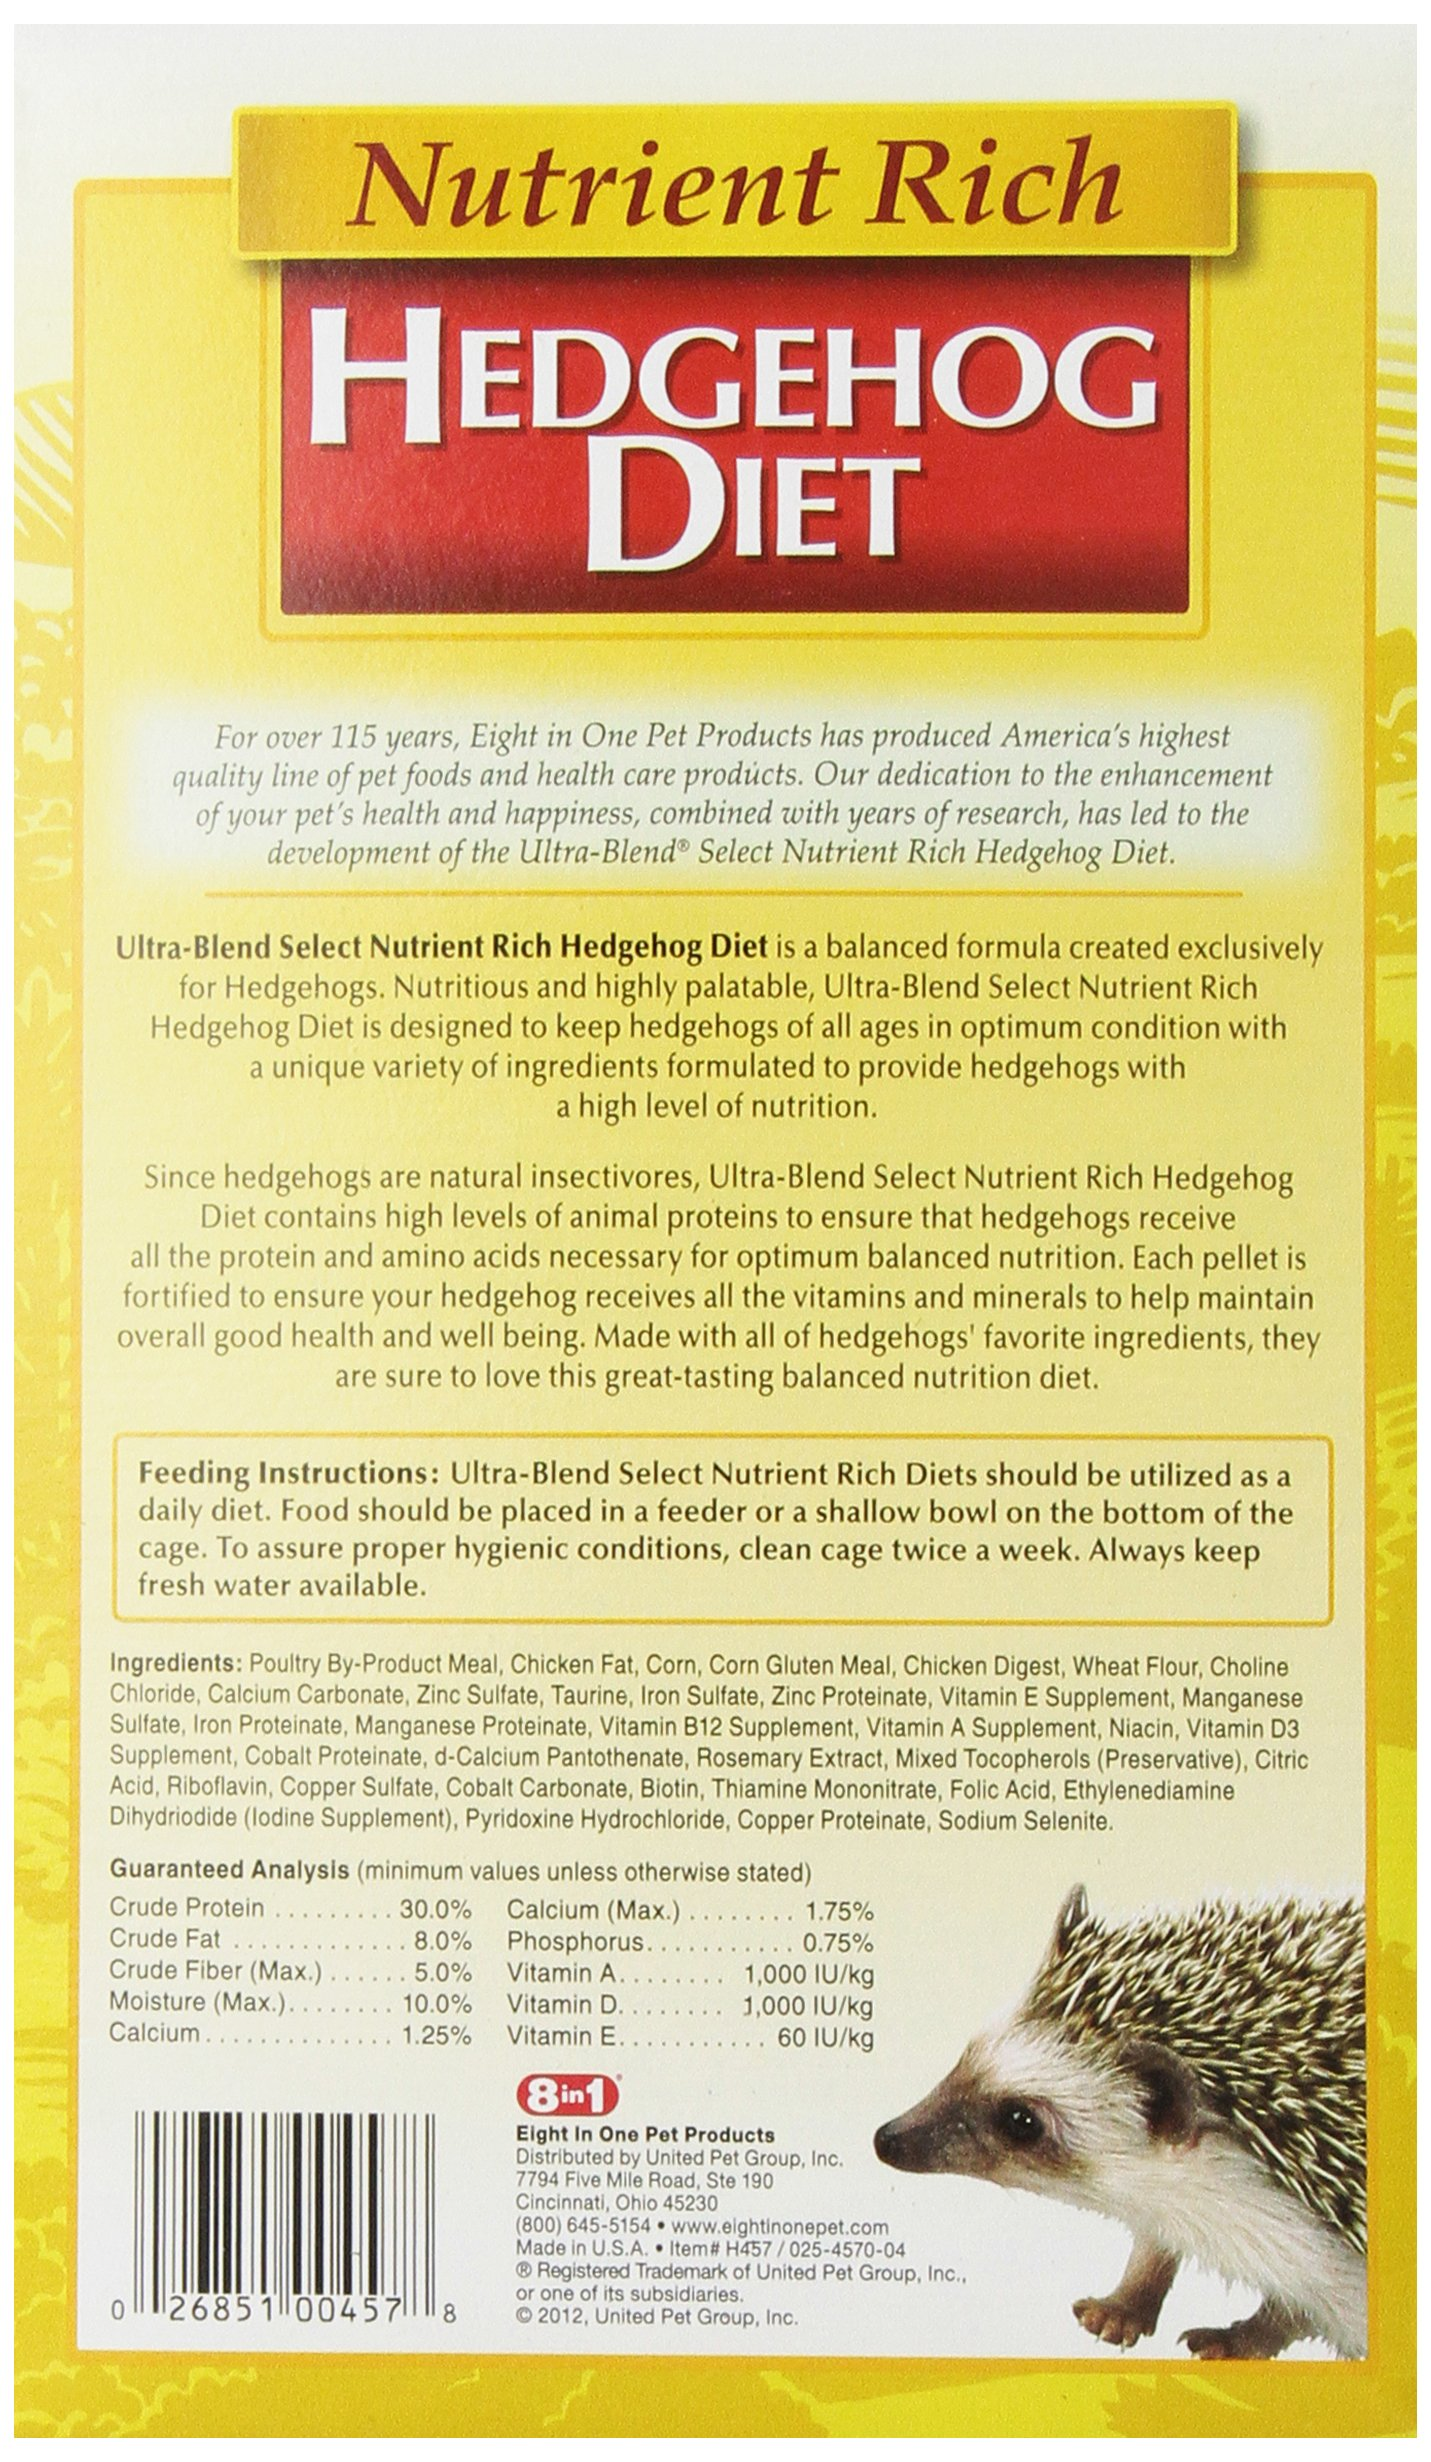 Eight in One (8 In 1) 8 In 1 Ultra-Blend Select Hedgehog Diet, 22-Ounce by Eight in One (8 In 1) (Image #4)